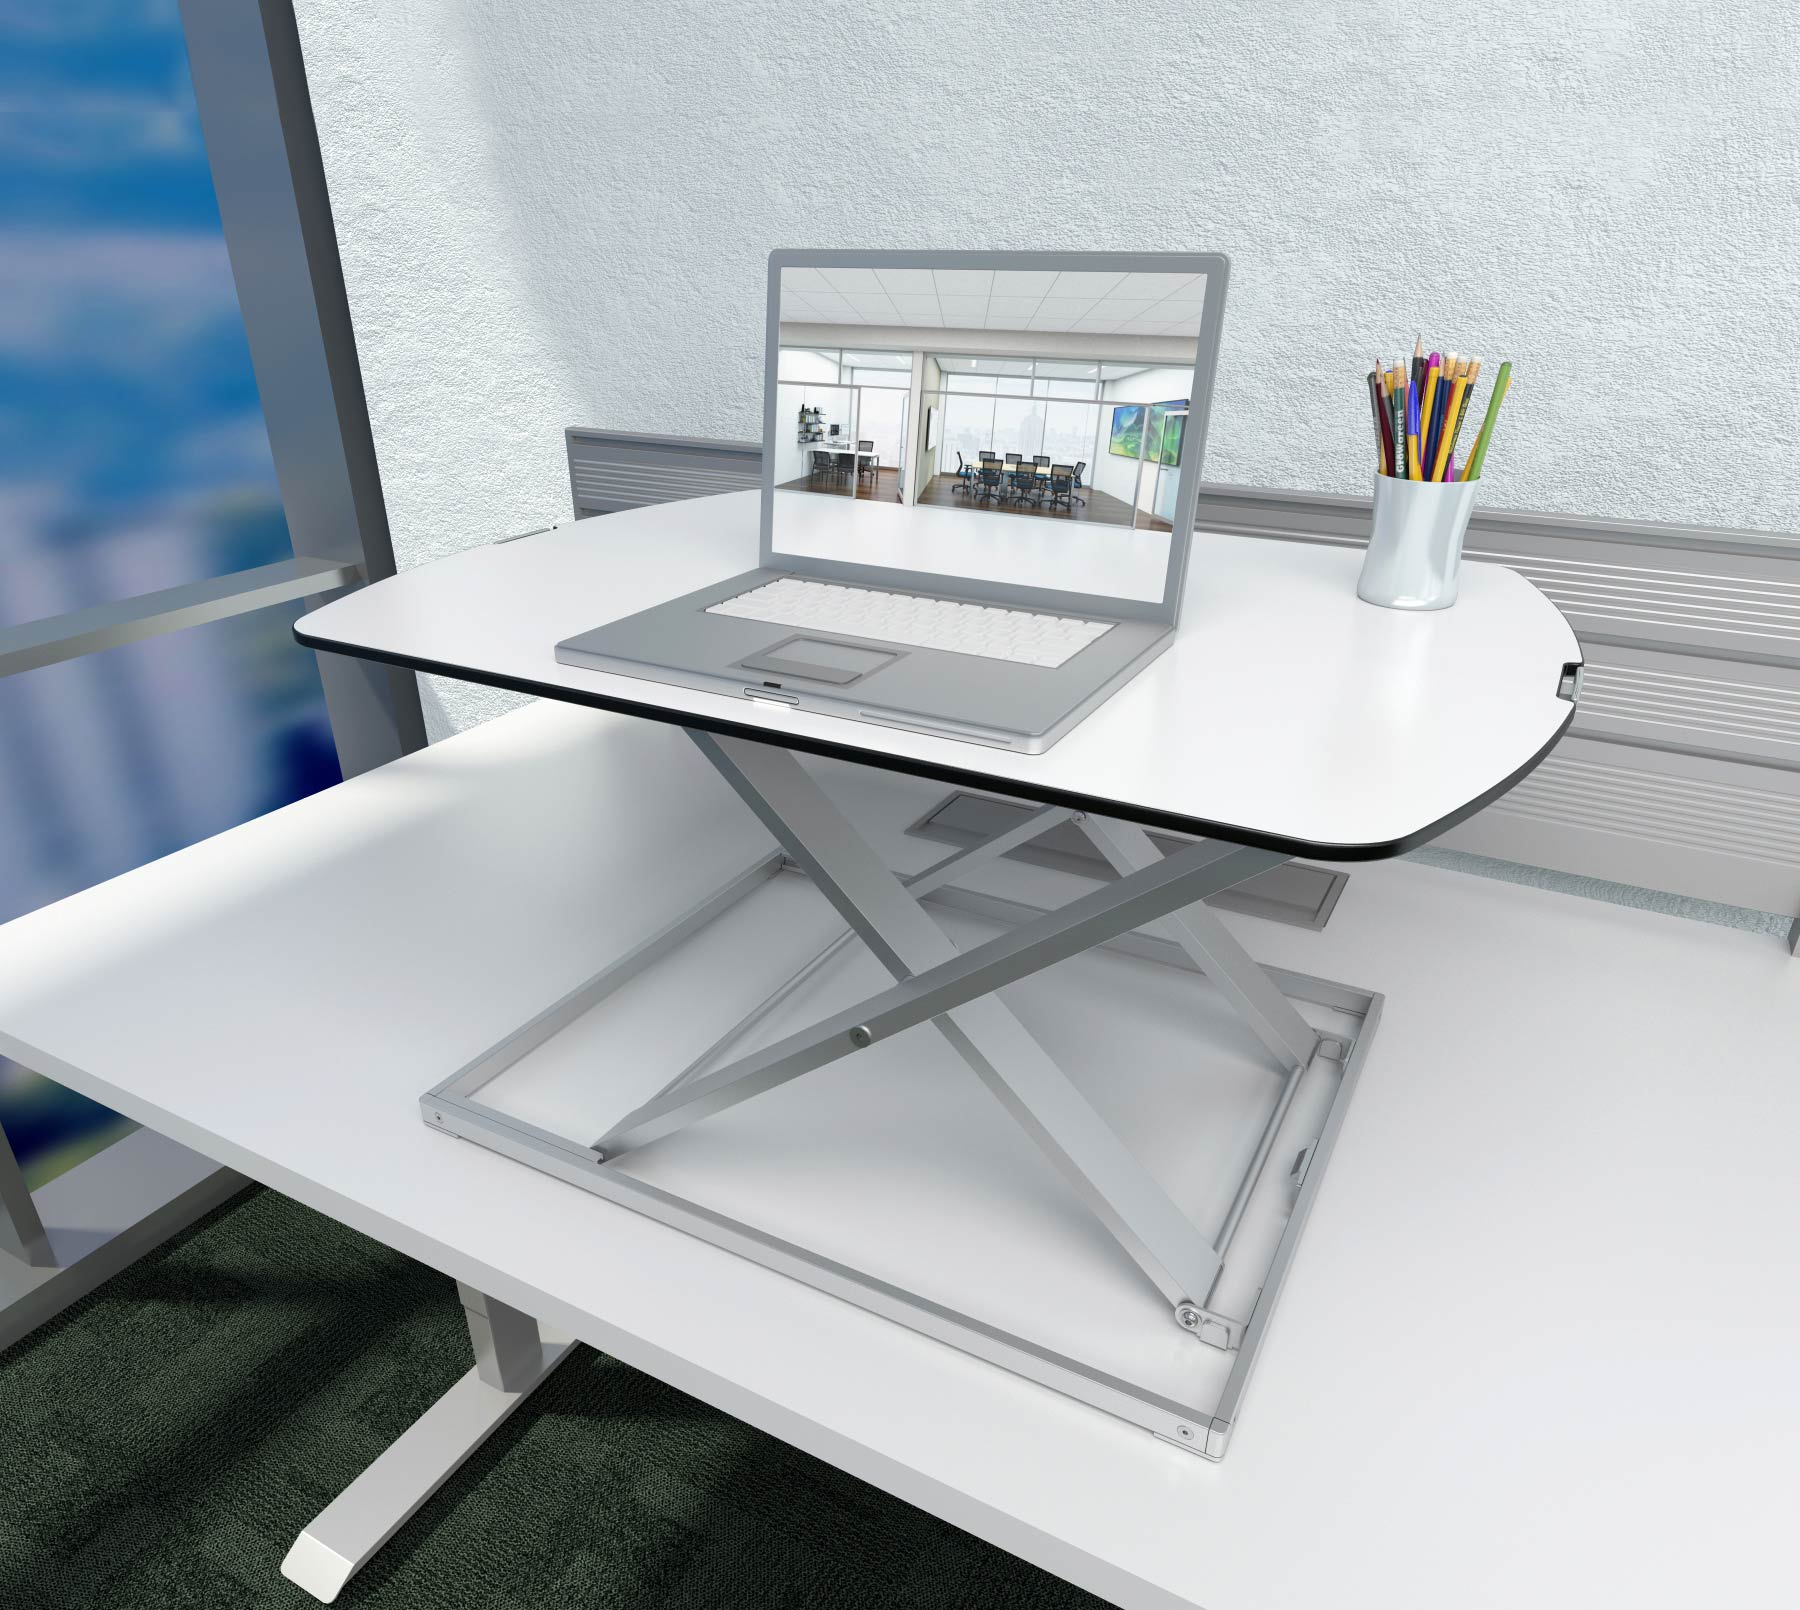 B6010 - The Rise Non-Powered Height Adjustable Desk